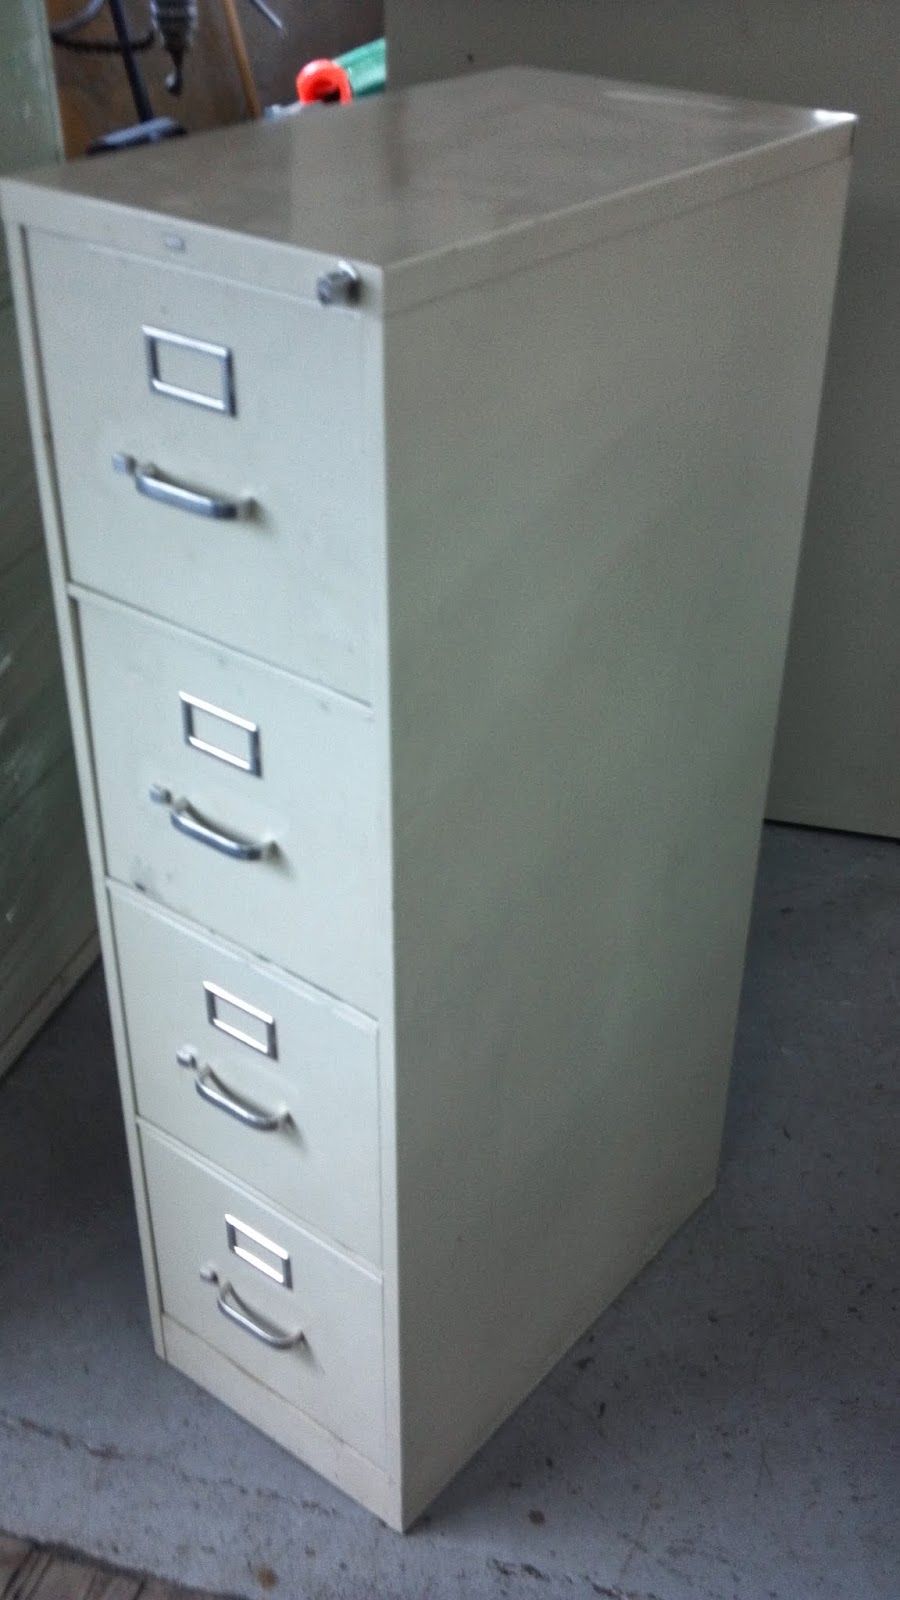 brucker brothers for sale hon 4 drawer file cabinets 50 each sold. Black Bedroom Furniture Sets. Home Design Ideas